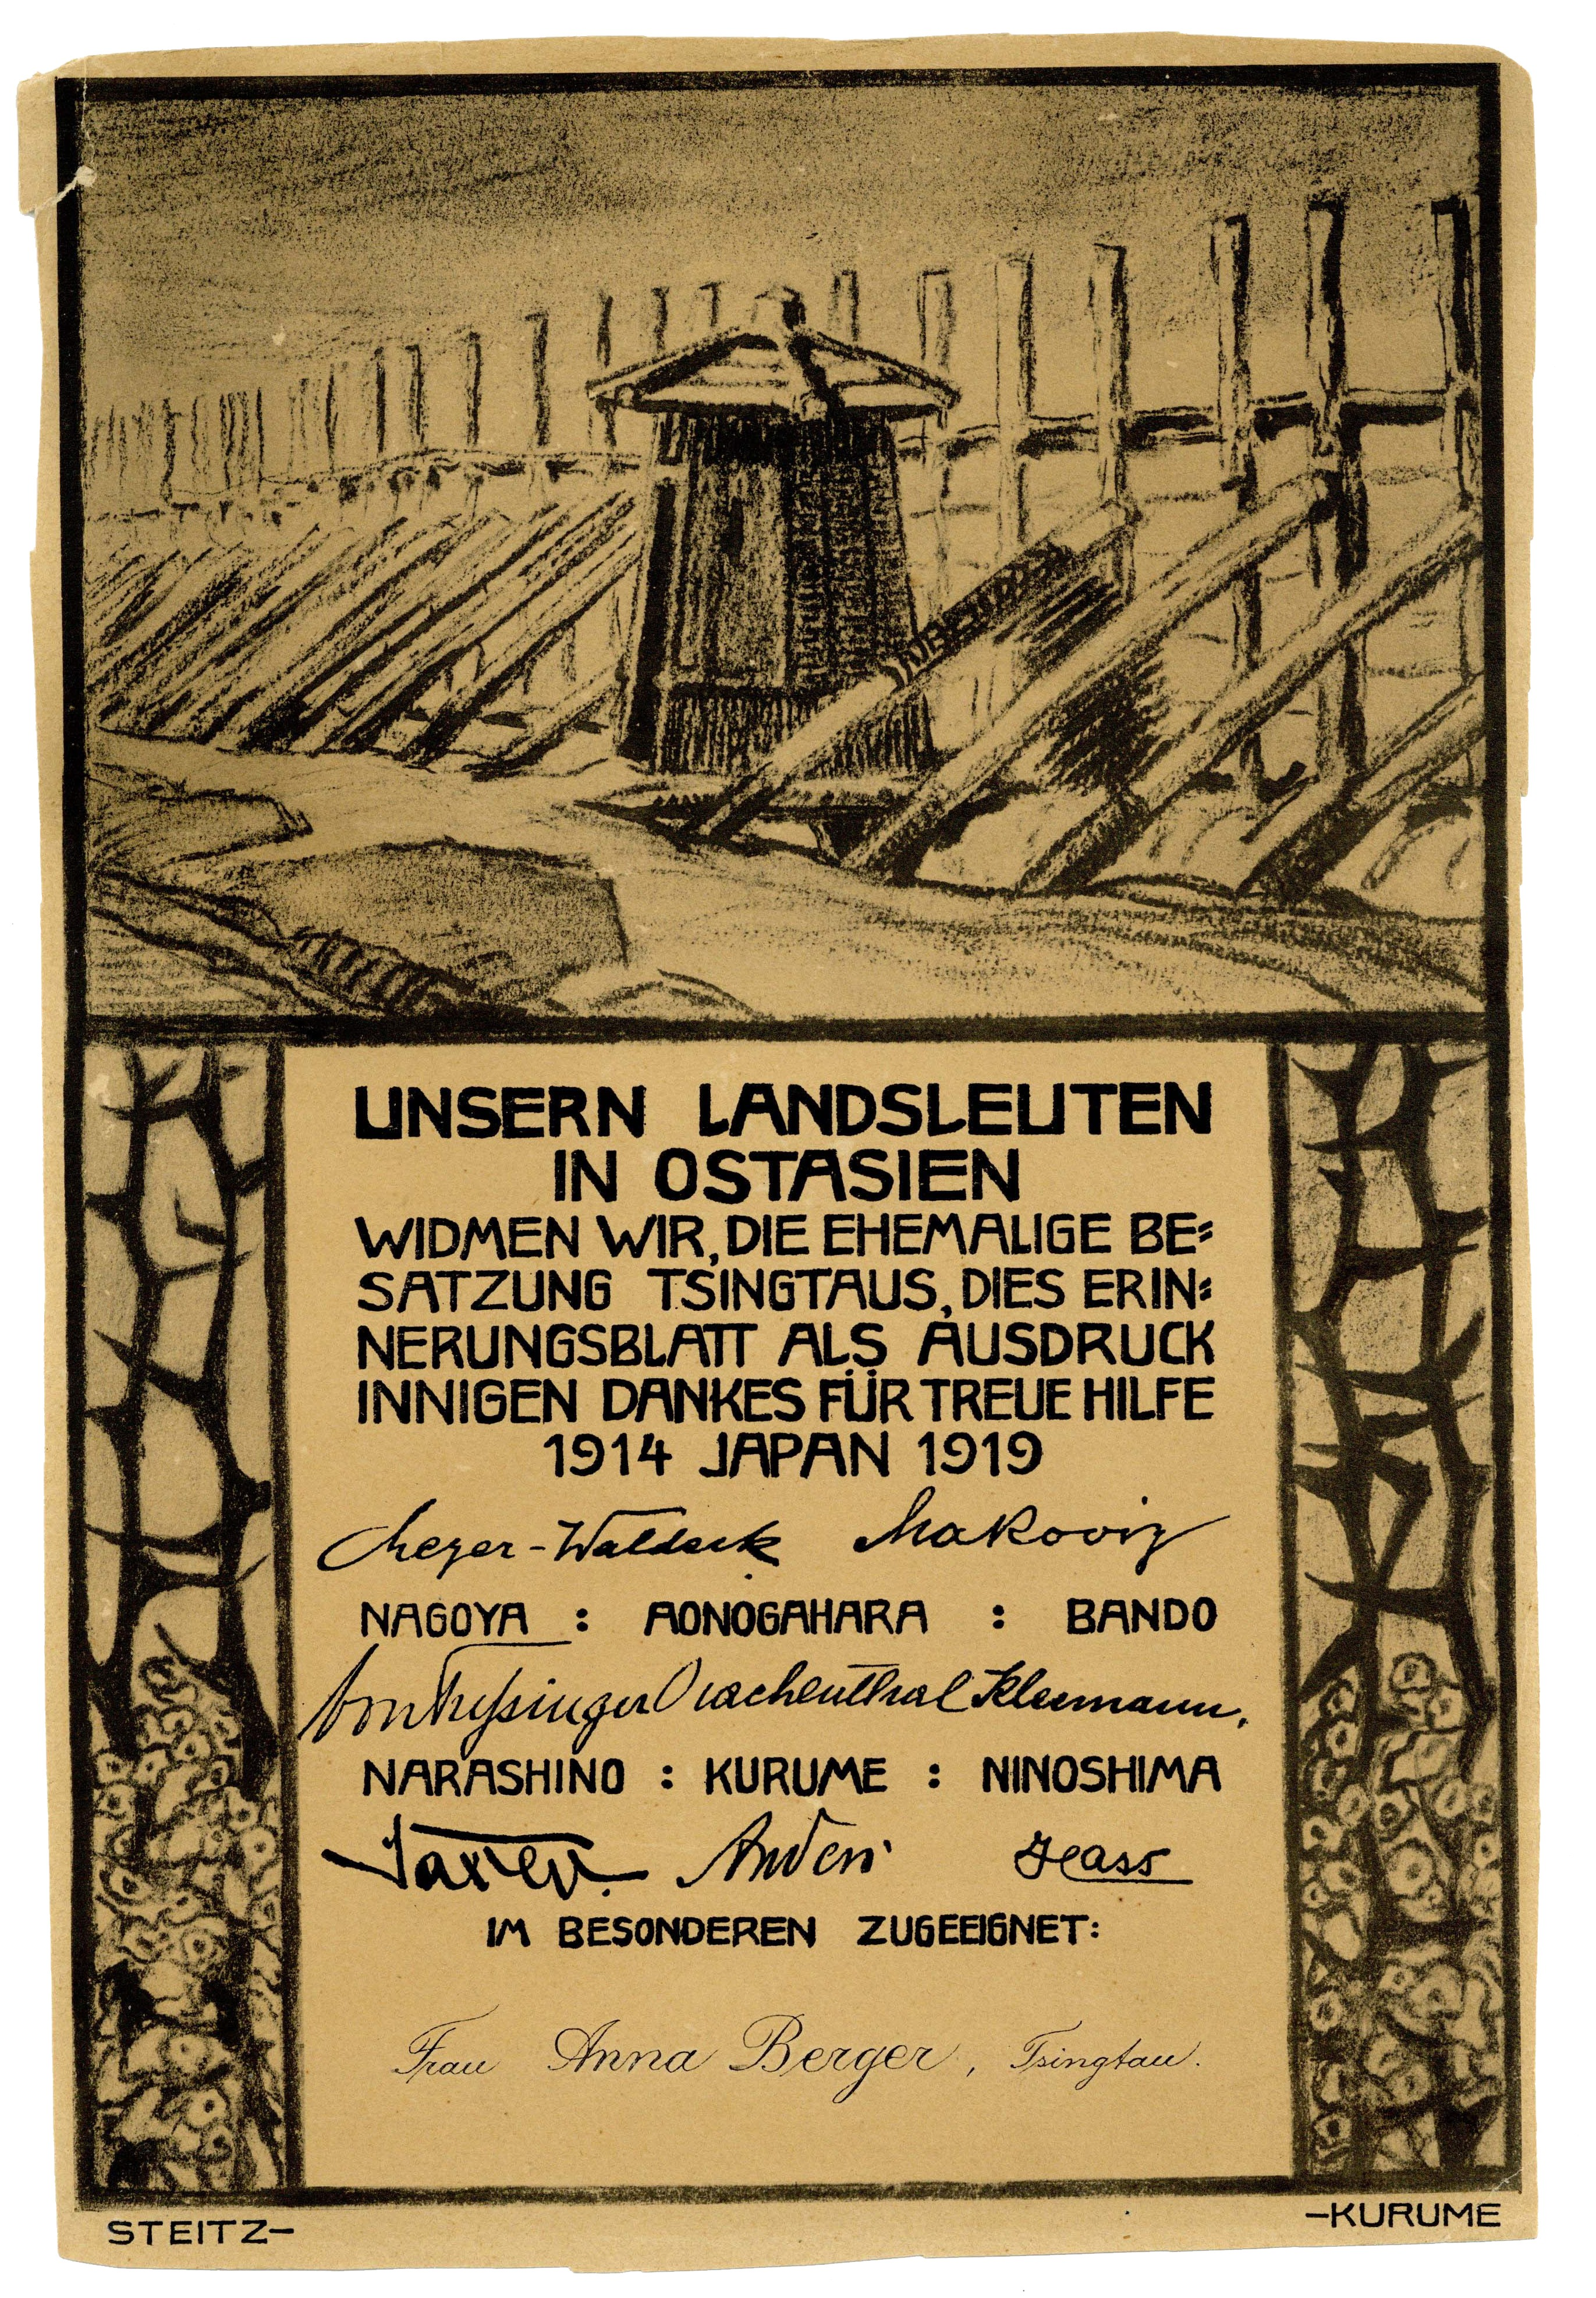 This  commemorative sheet of German prisoners of war in Japan was sent to Anna Berger, lithograph, 1919 (Museum and Gallery Falkensee, CC BY-NC-SA)